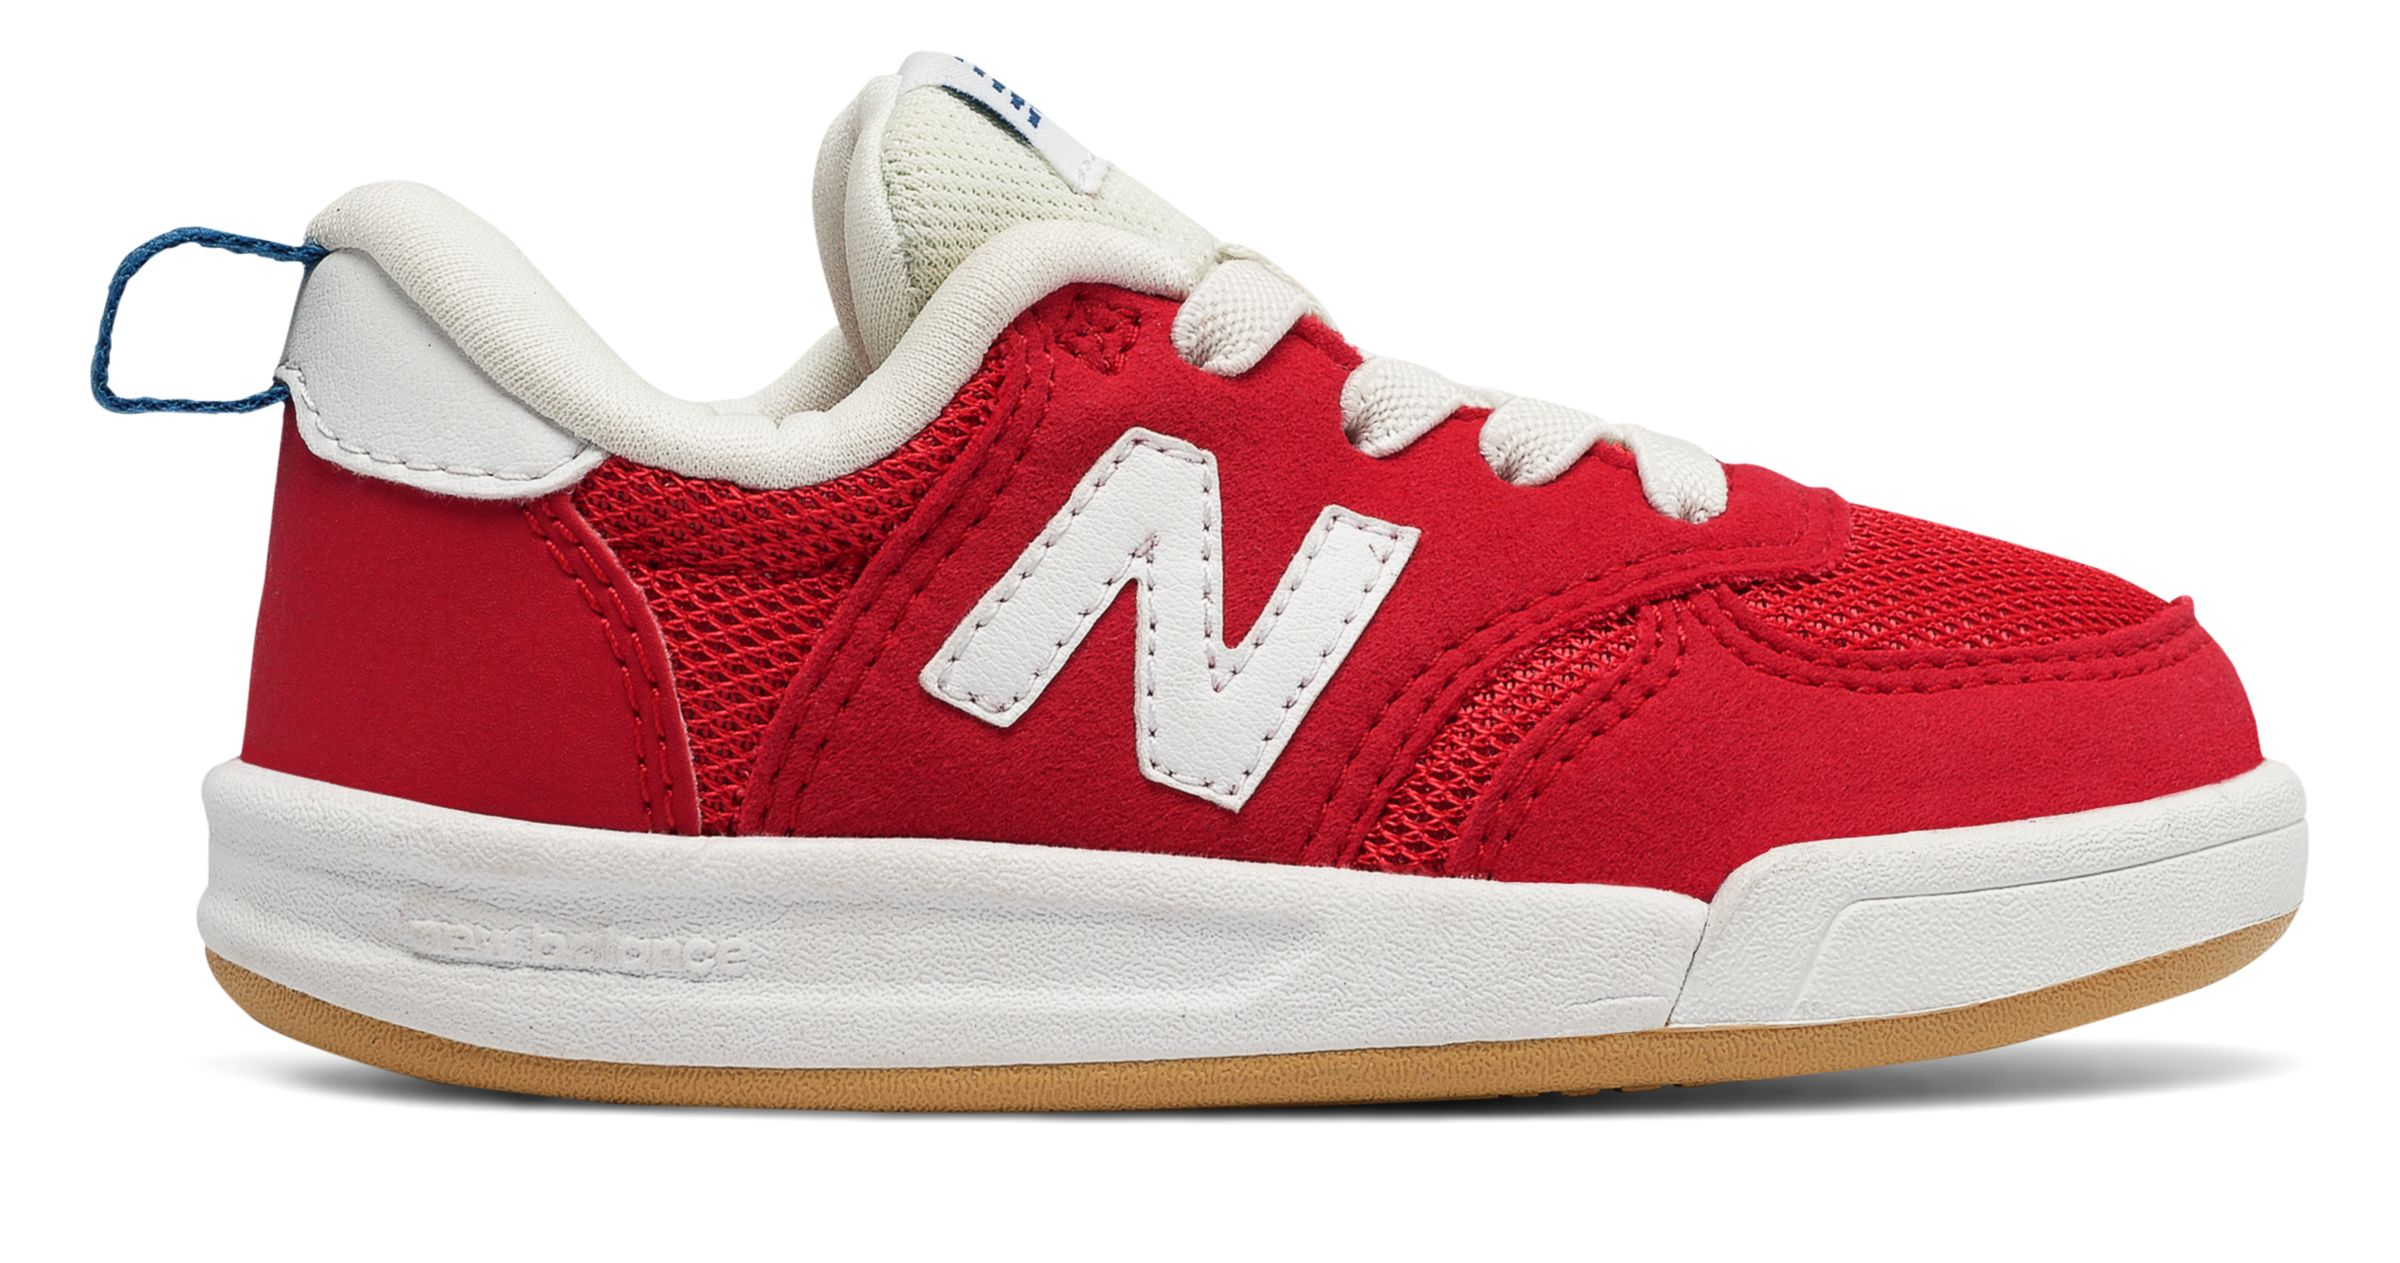 NB 300 New Balance, Red with White